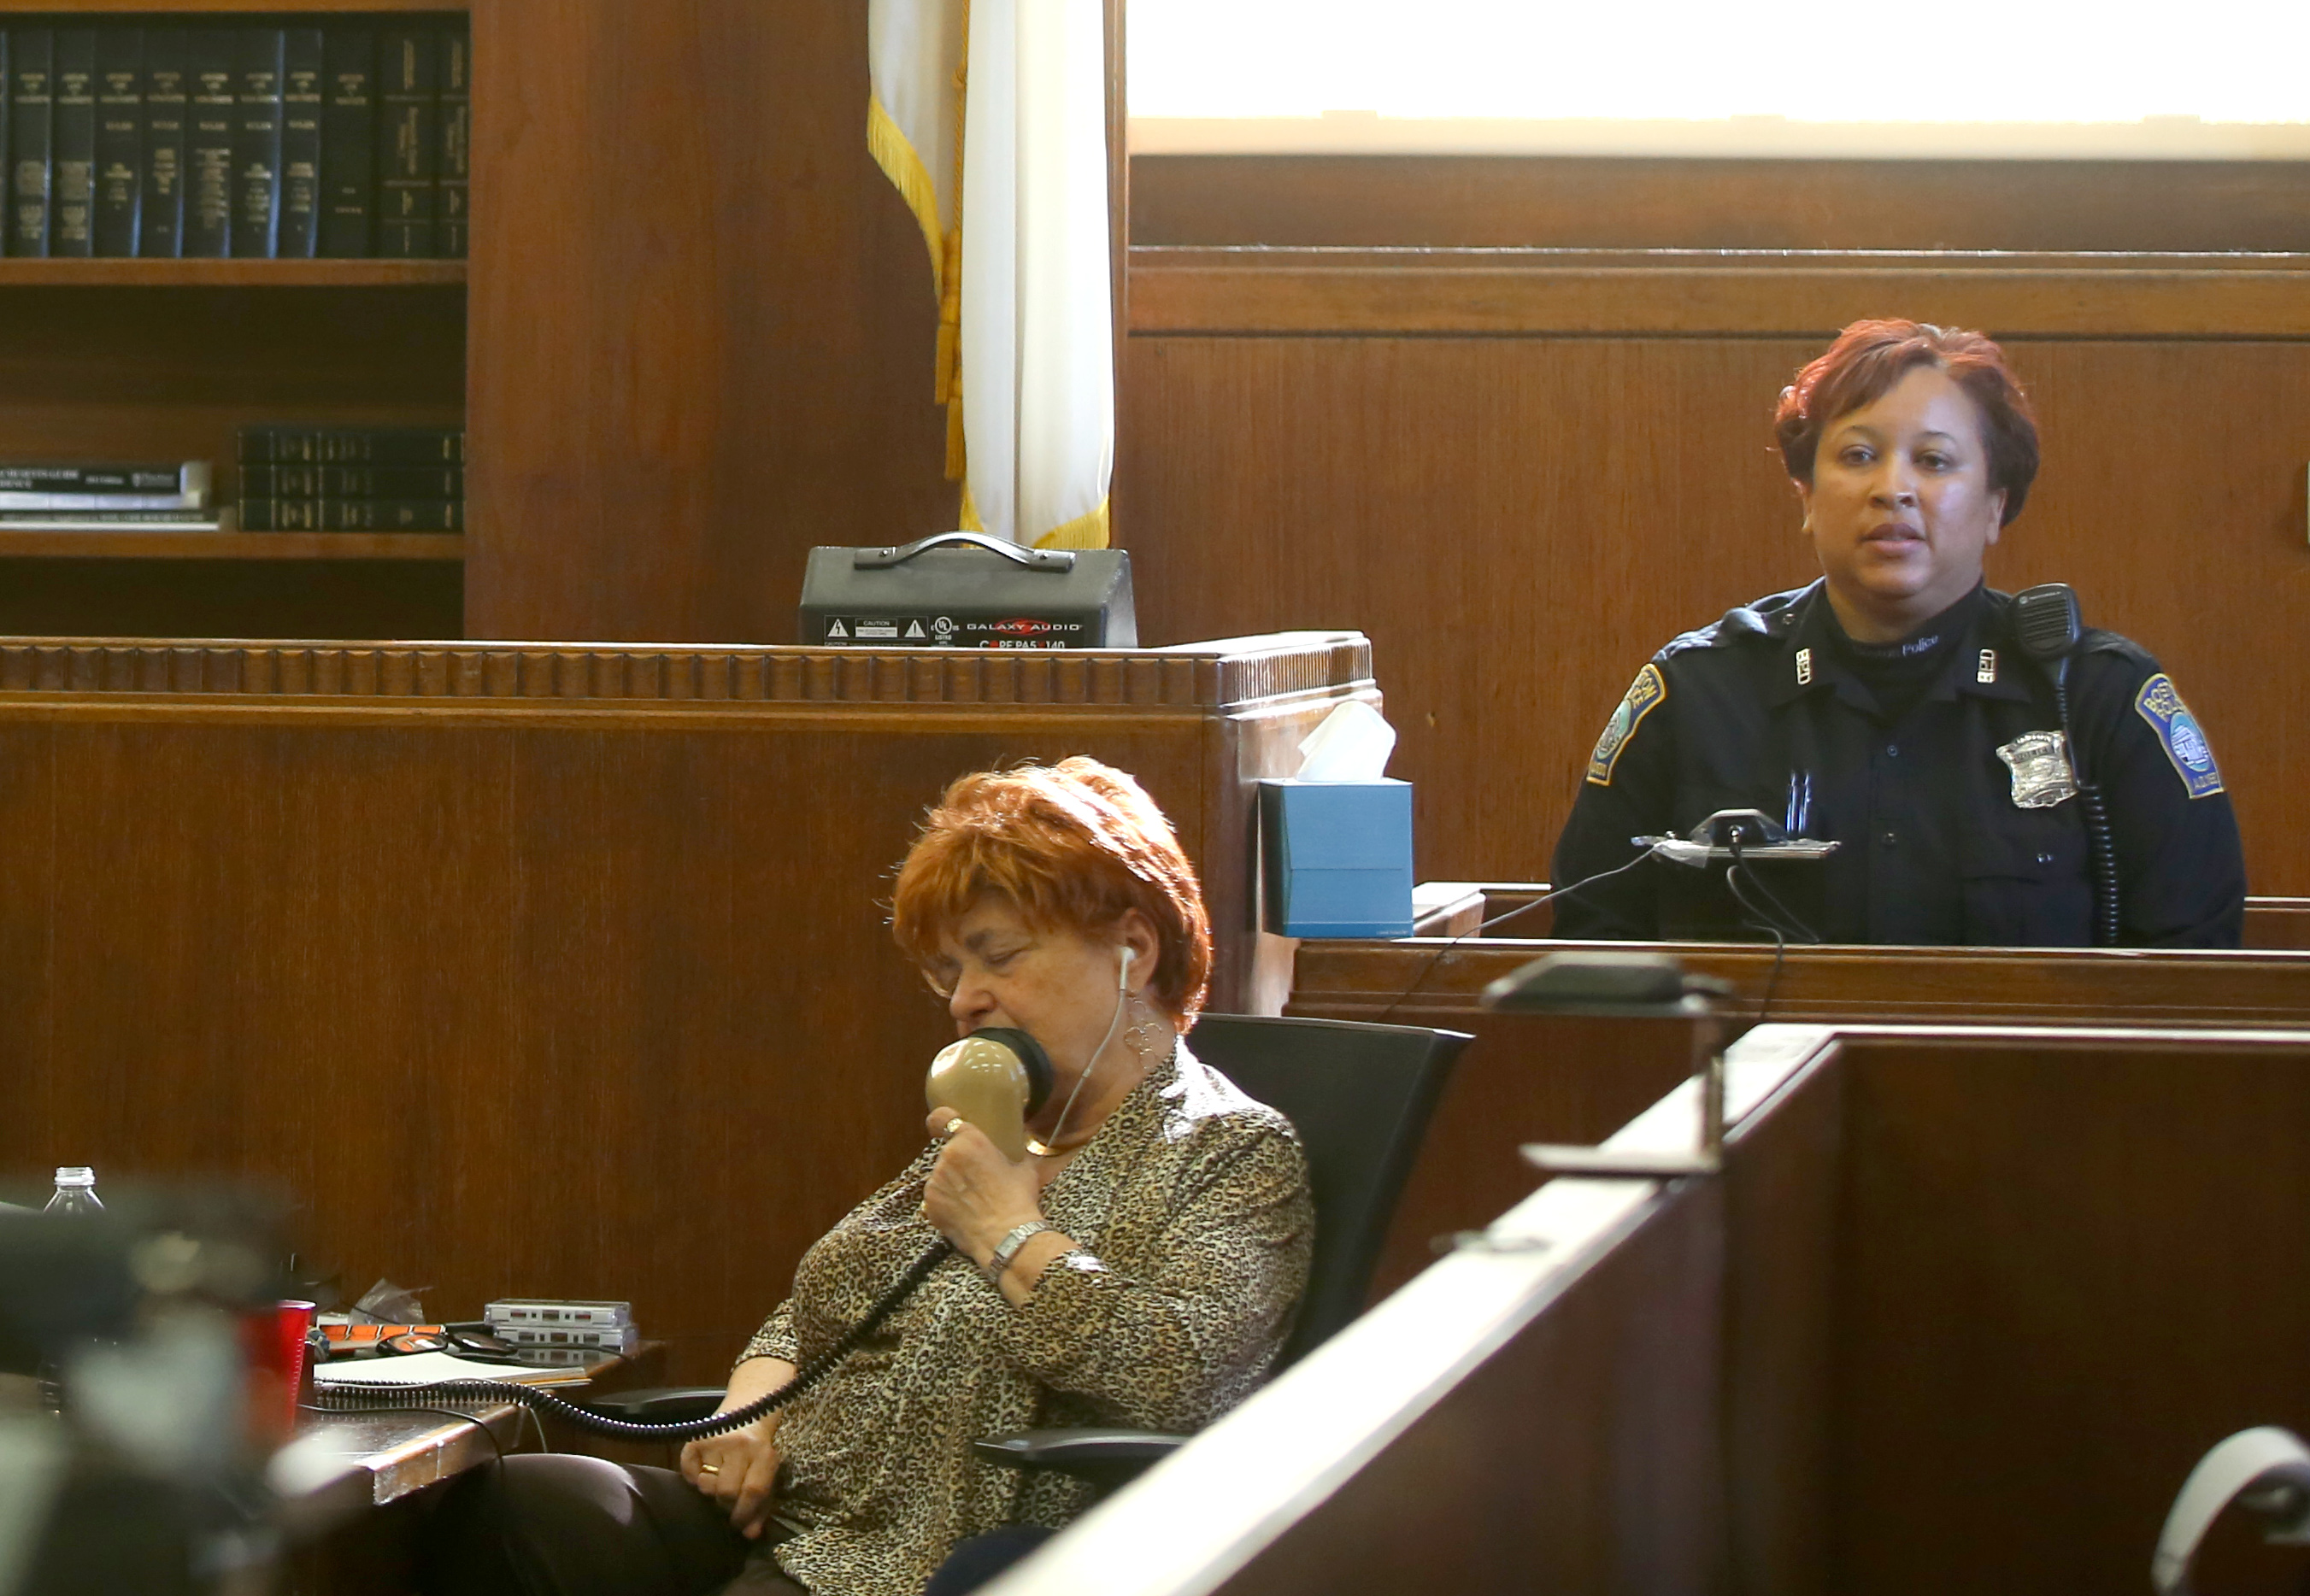 Objections raised as courtrooms go digital - The Boston Globe